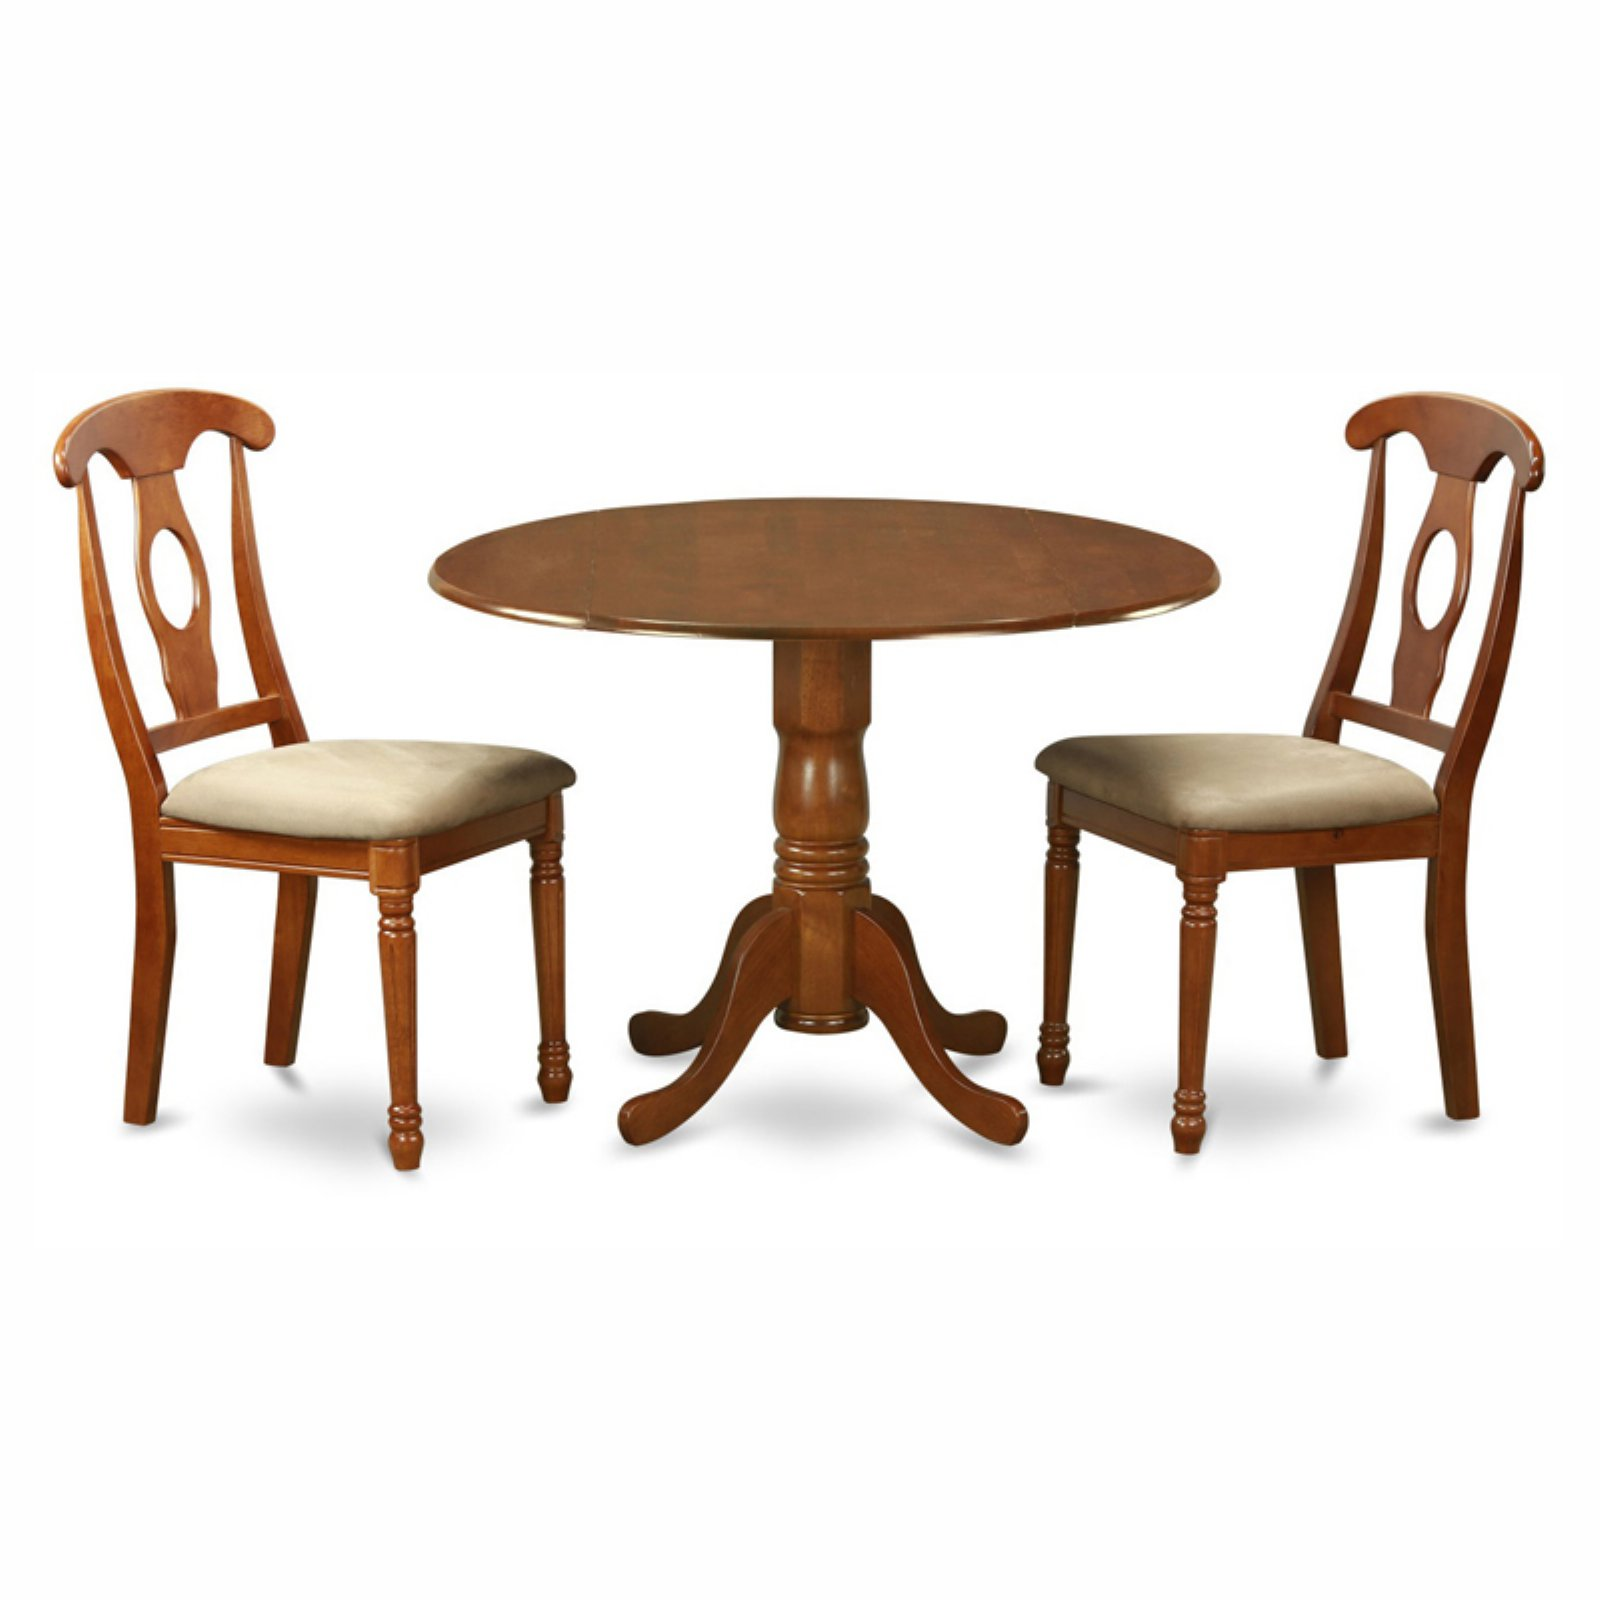 East West Furniture Dublin 3 Piece Drop Leaf Dining Table Set with Kenley Microfiber Seat Chairs